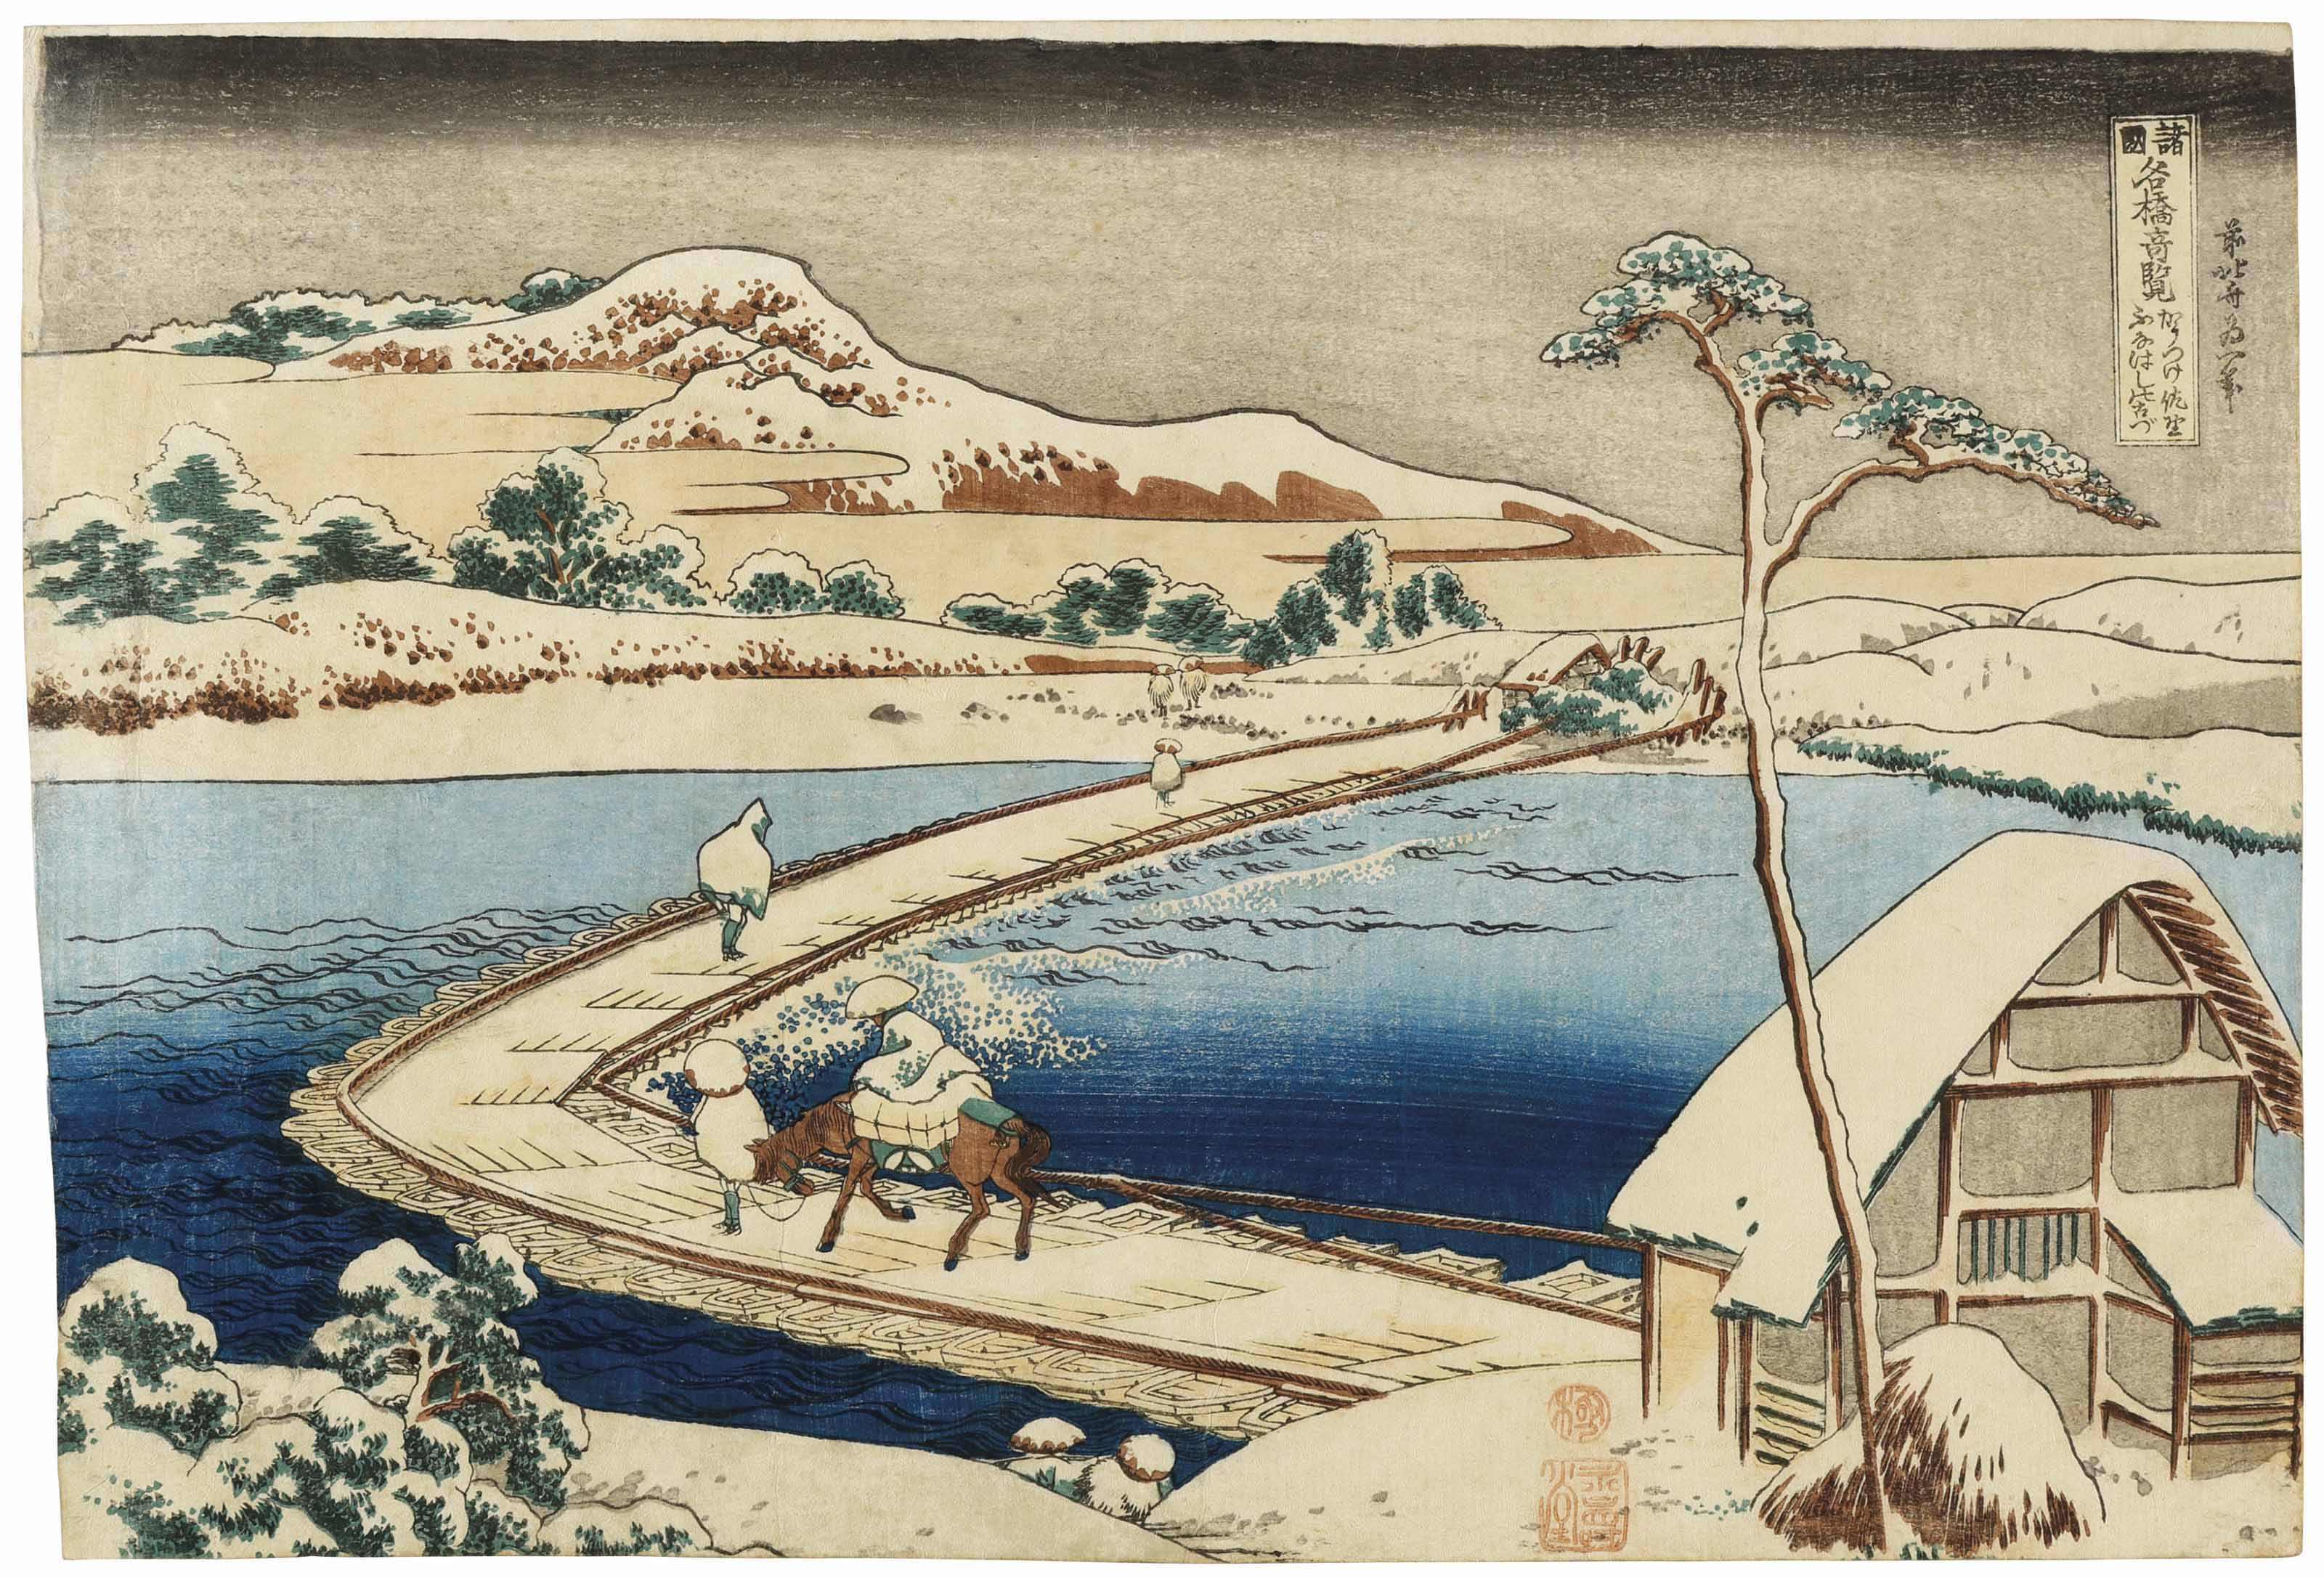 Katsushika Hokusai (1760-1849), Kozuke Sano Funabashi No Kozu (Pontoon Bridge at Sano. Kozuke Province Ancient View), from the series Shokoku Meikyo Kiran (Wondrous Views of Famous Bridges in all the Provinces). 10 x 14⅝  in (25.4 x 37.1  cm). Sold for $27,500 on 18 April 2018 at Christie's in New York